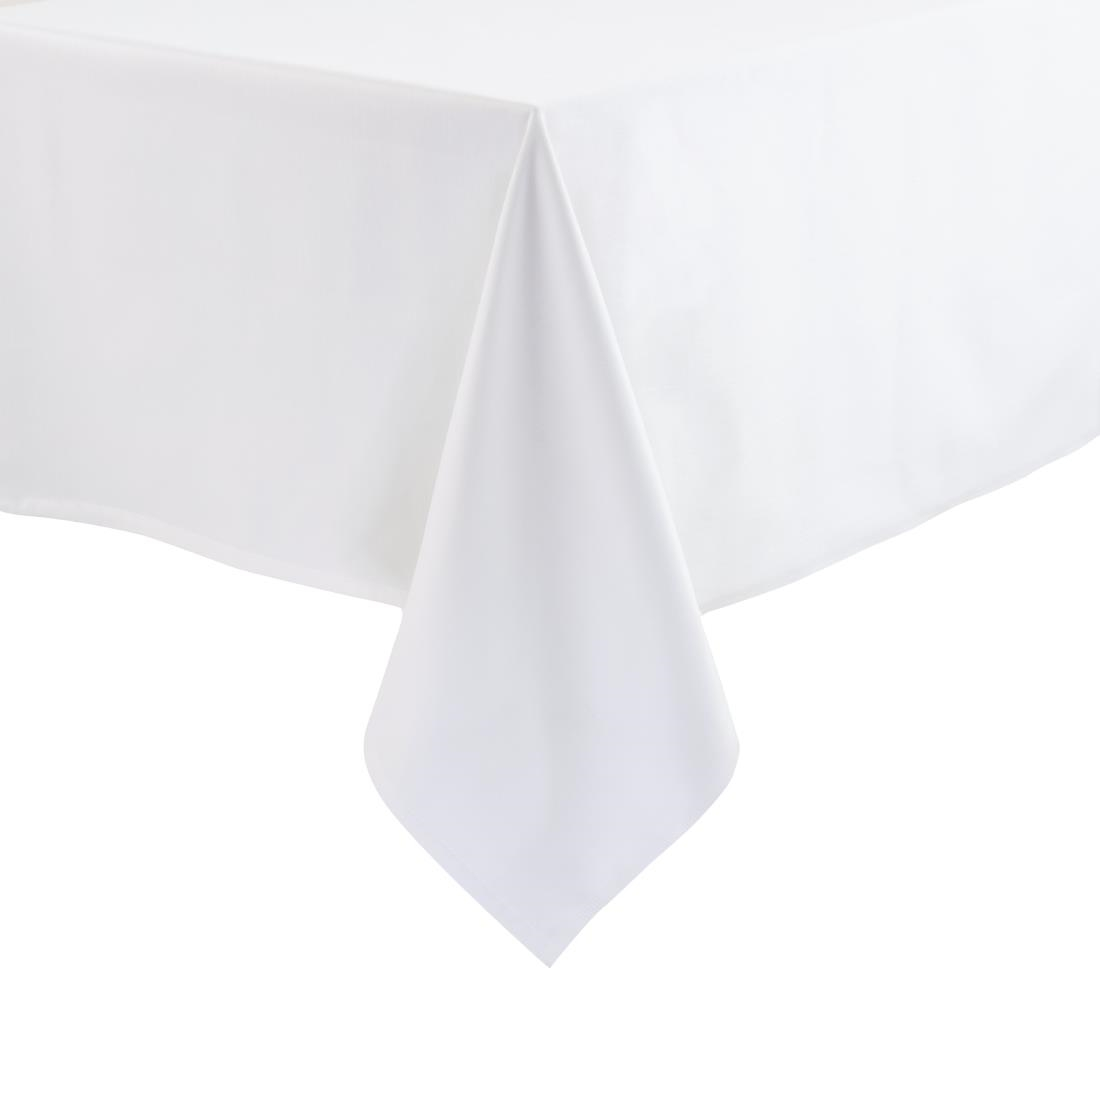 Image of Rectangular Polycotton Tablecloth White 54 x 70in